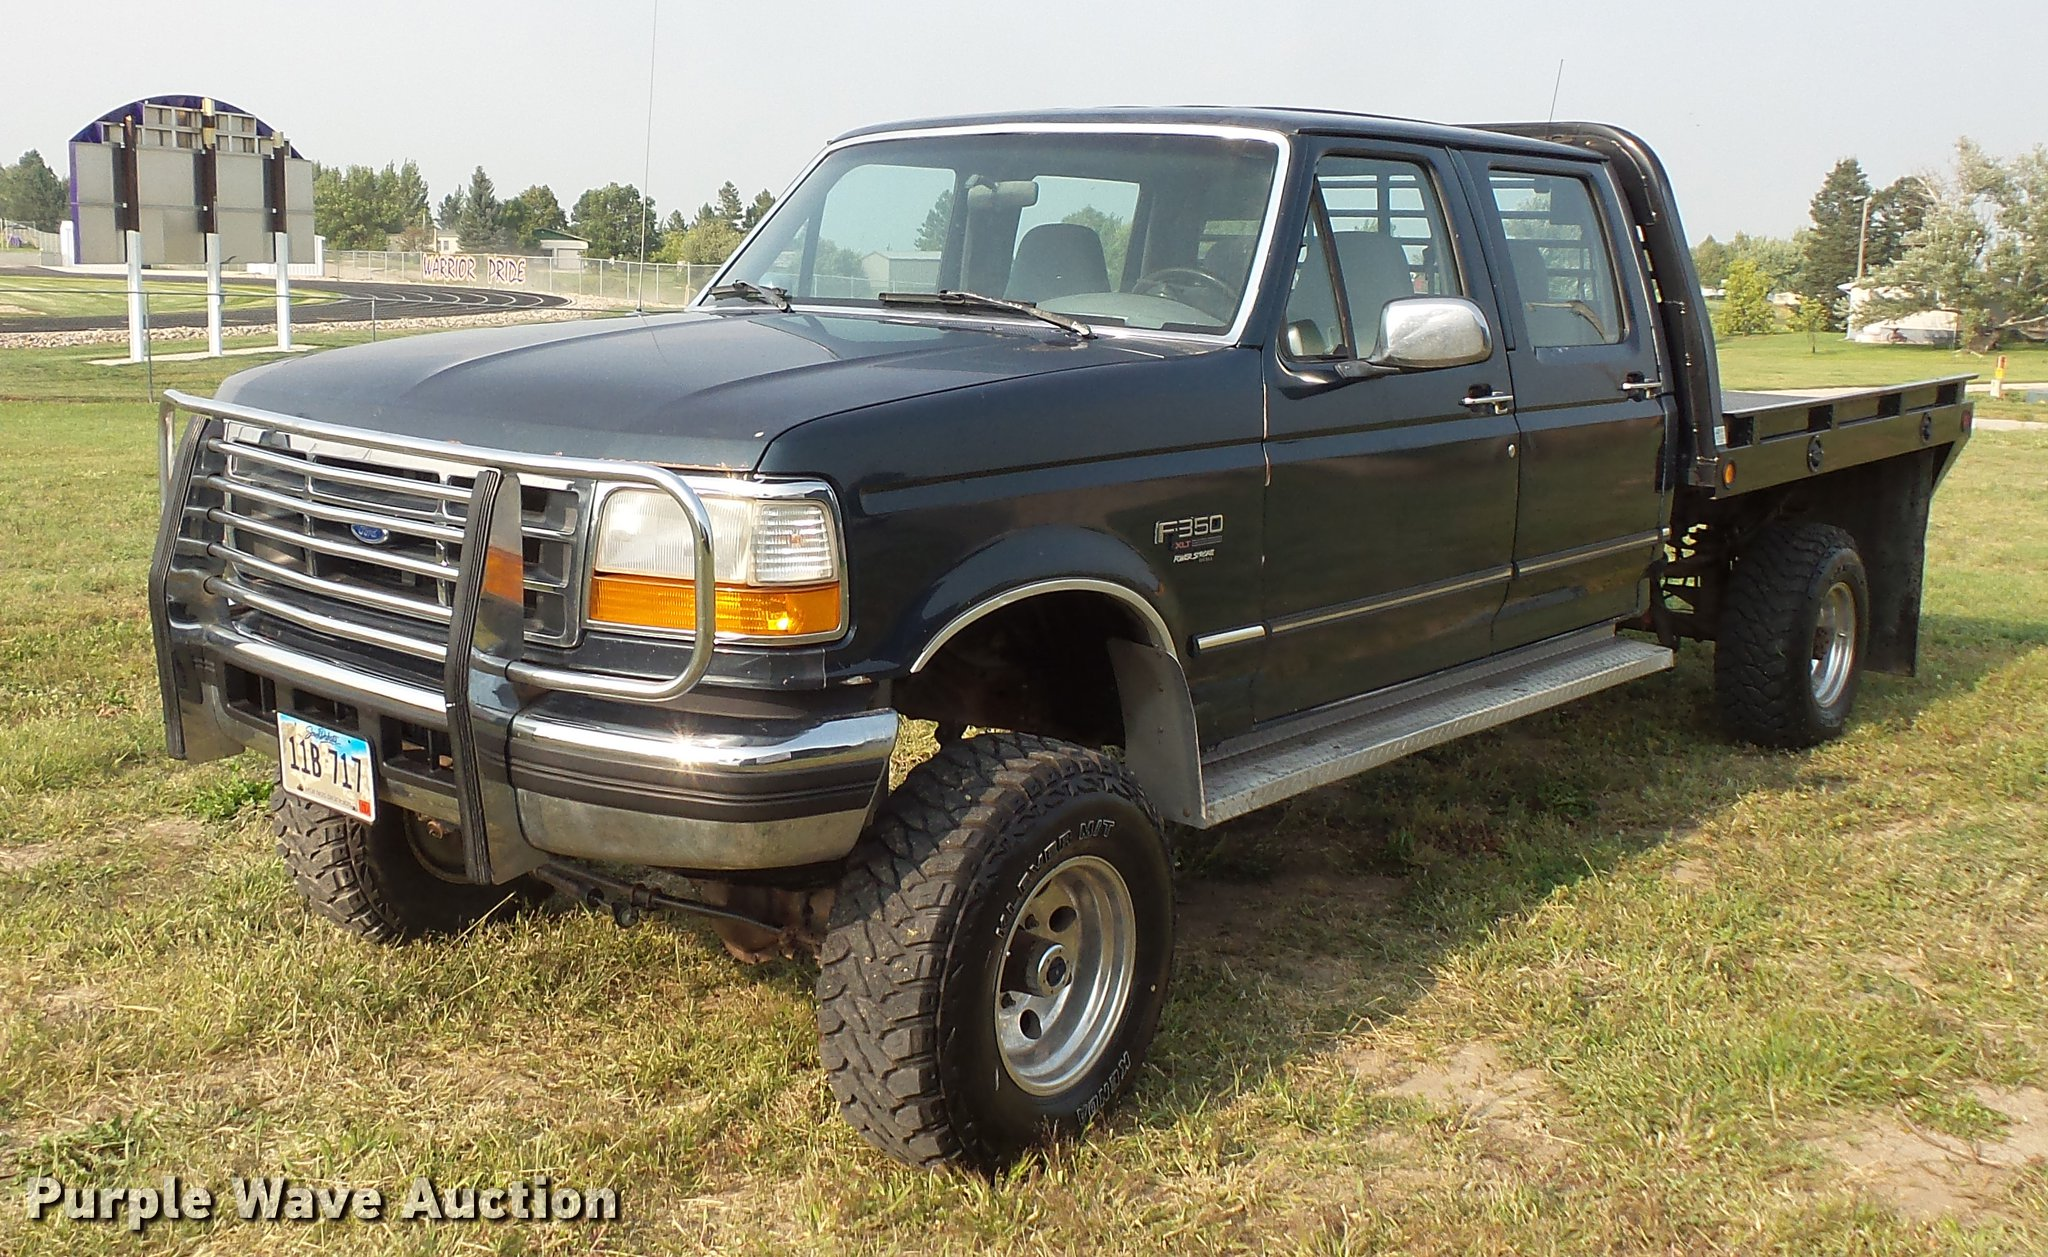 1995 ford f350 super duty crew cab flatbed pickup truck